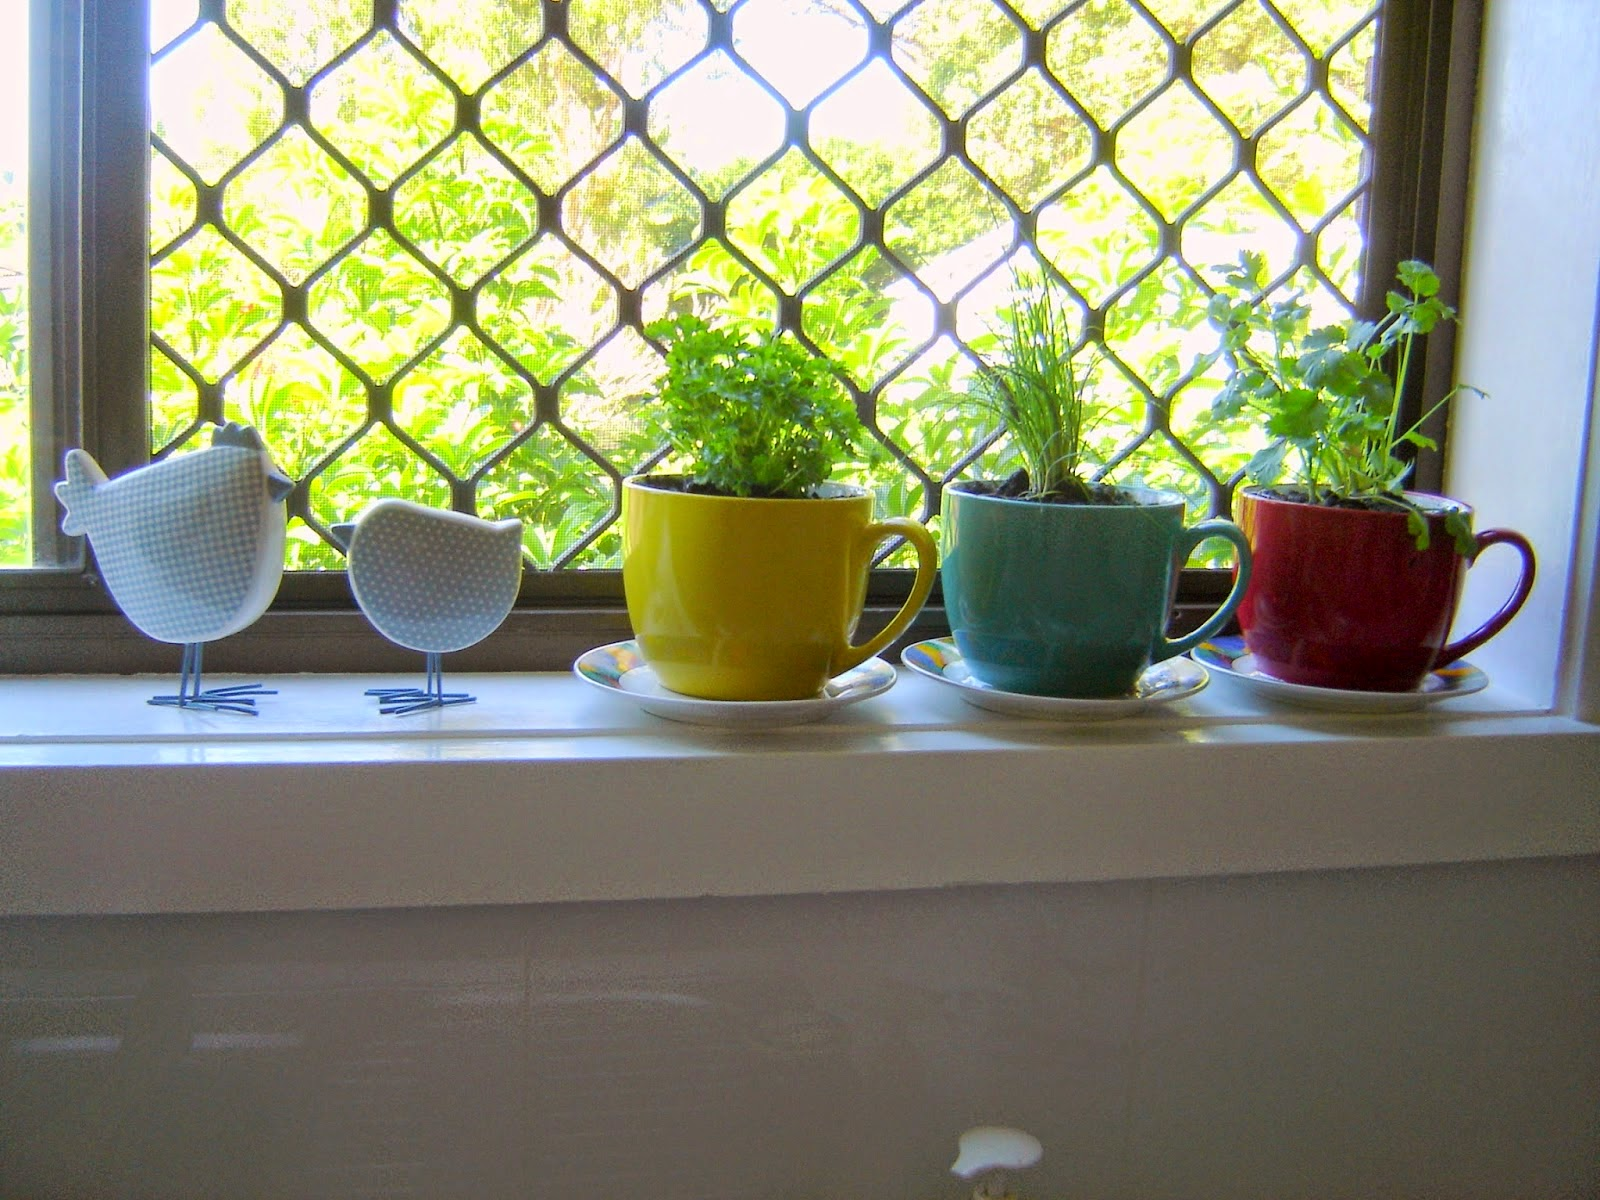 http://nannynotes2u.blogspot.com.au/2014/08/nannys-herbs-in-window.html